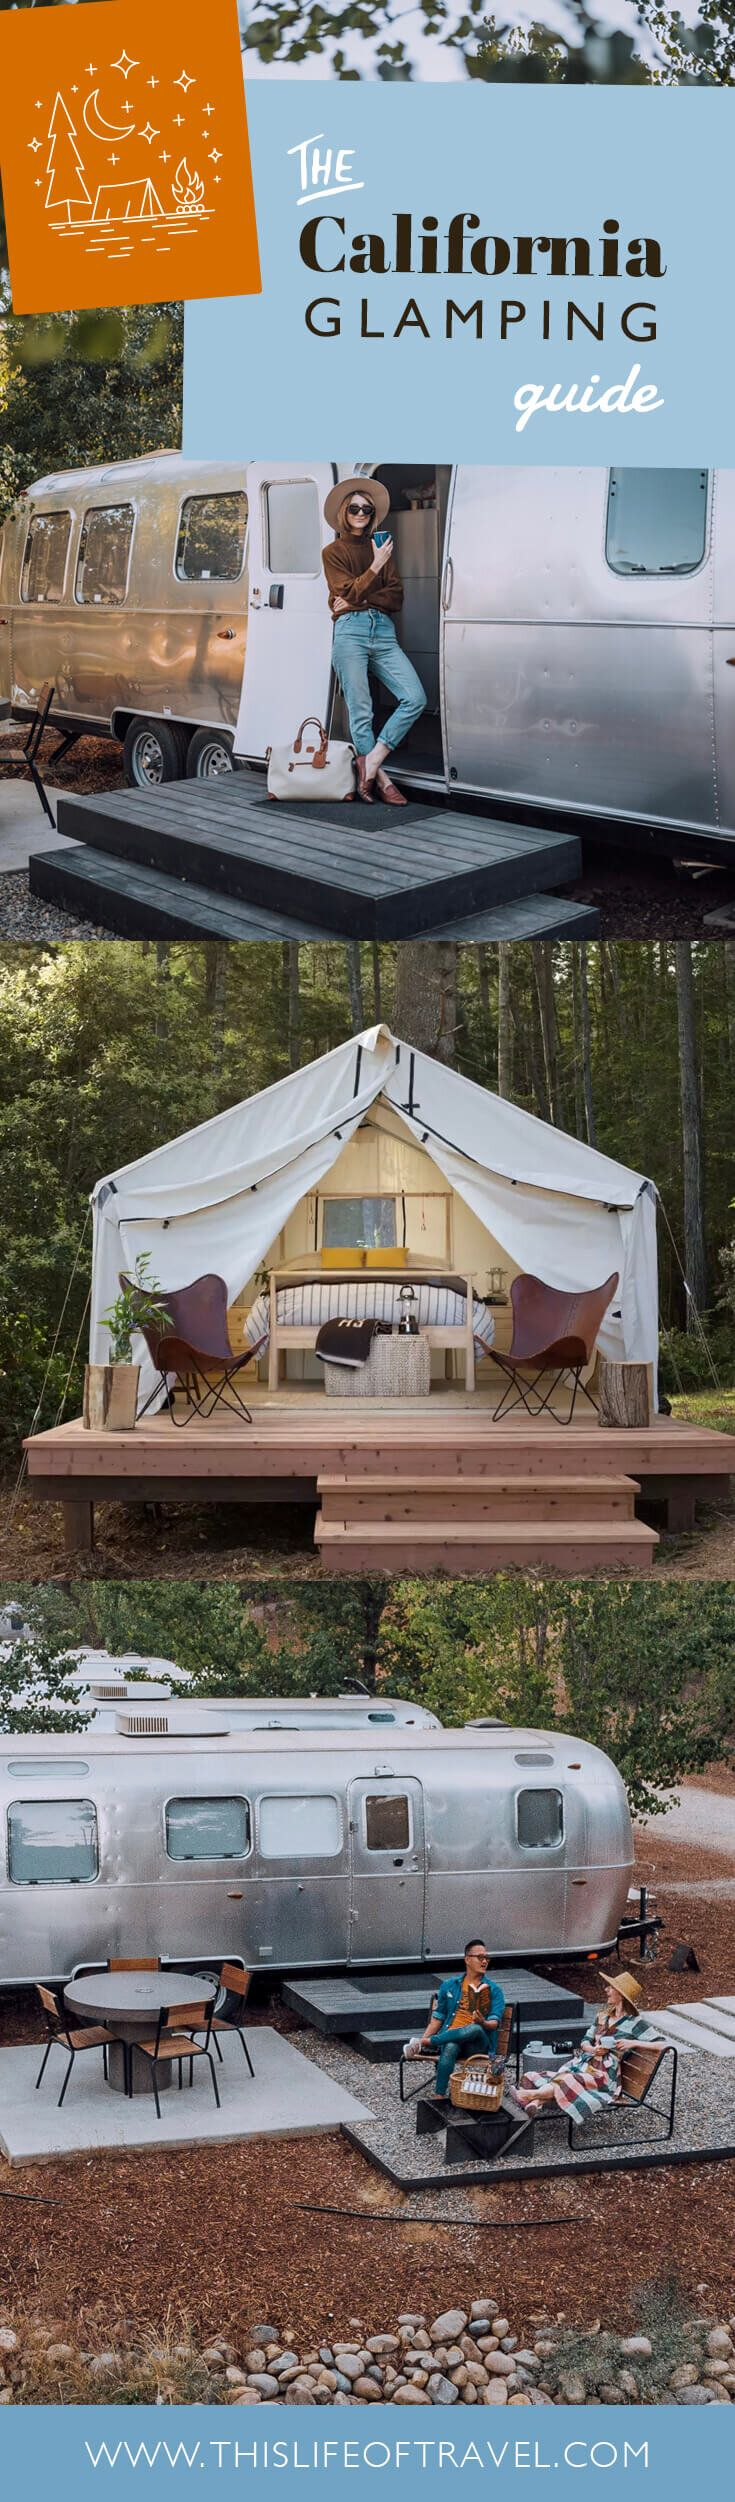 Finest Glamping Spots in California